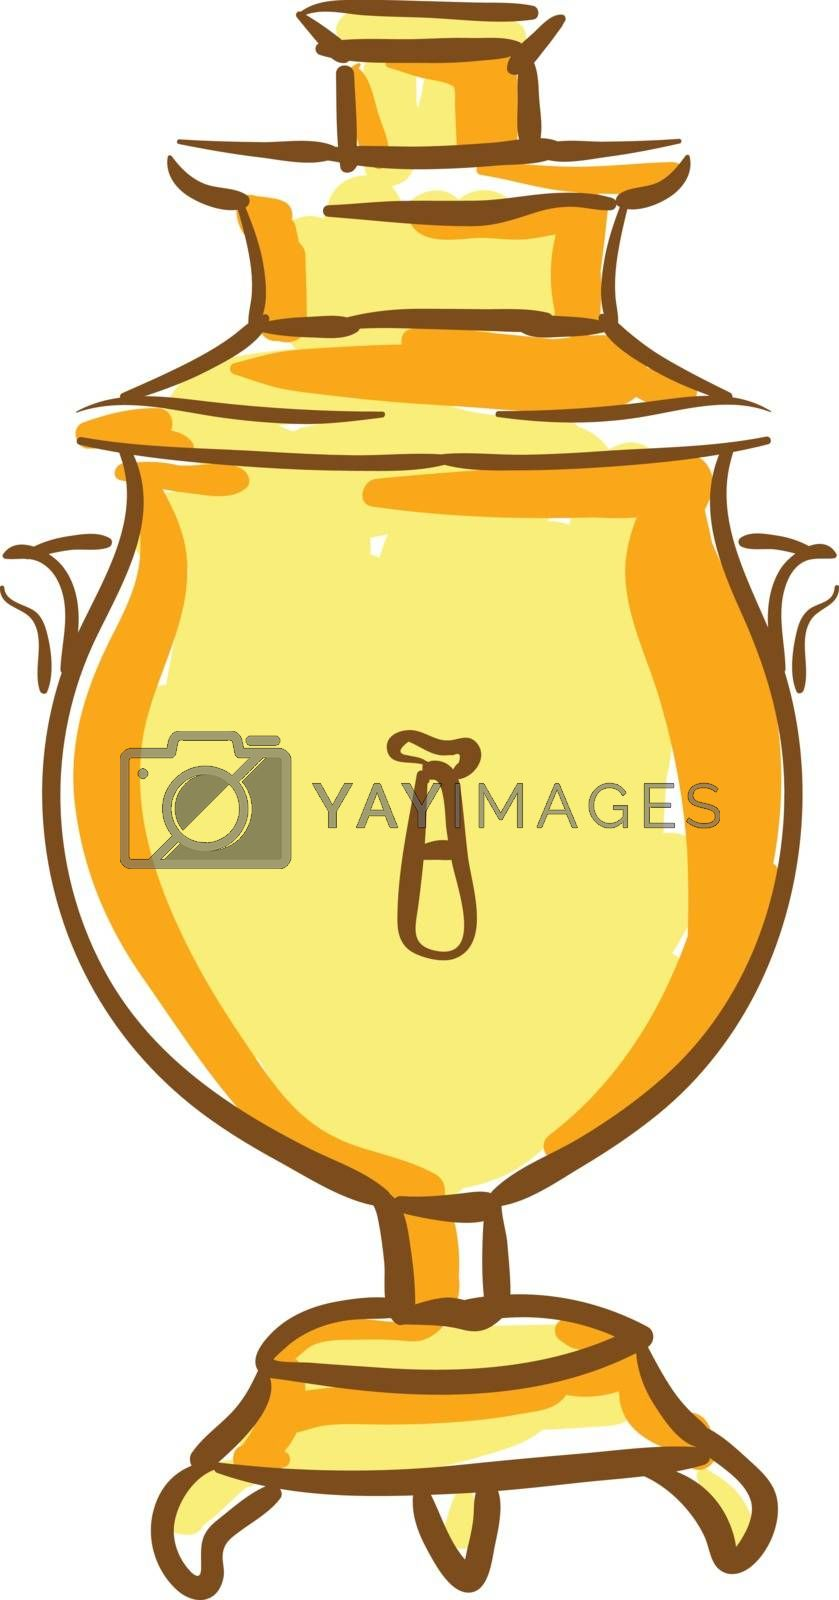 Royalty free image of Clipart of an oval-shaped Russian samovar vector or color illust by Morphart